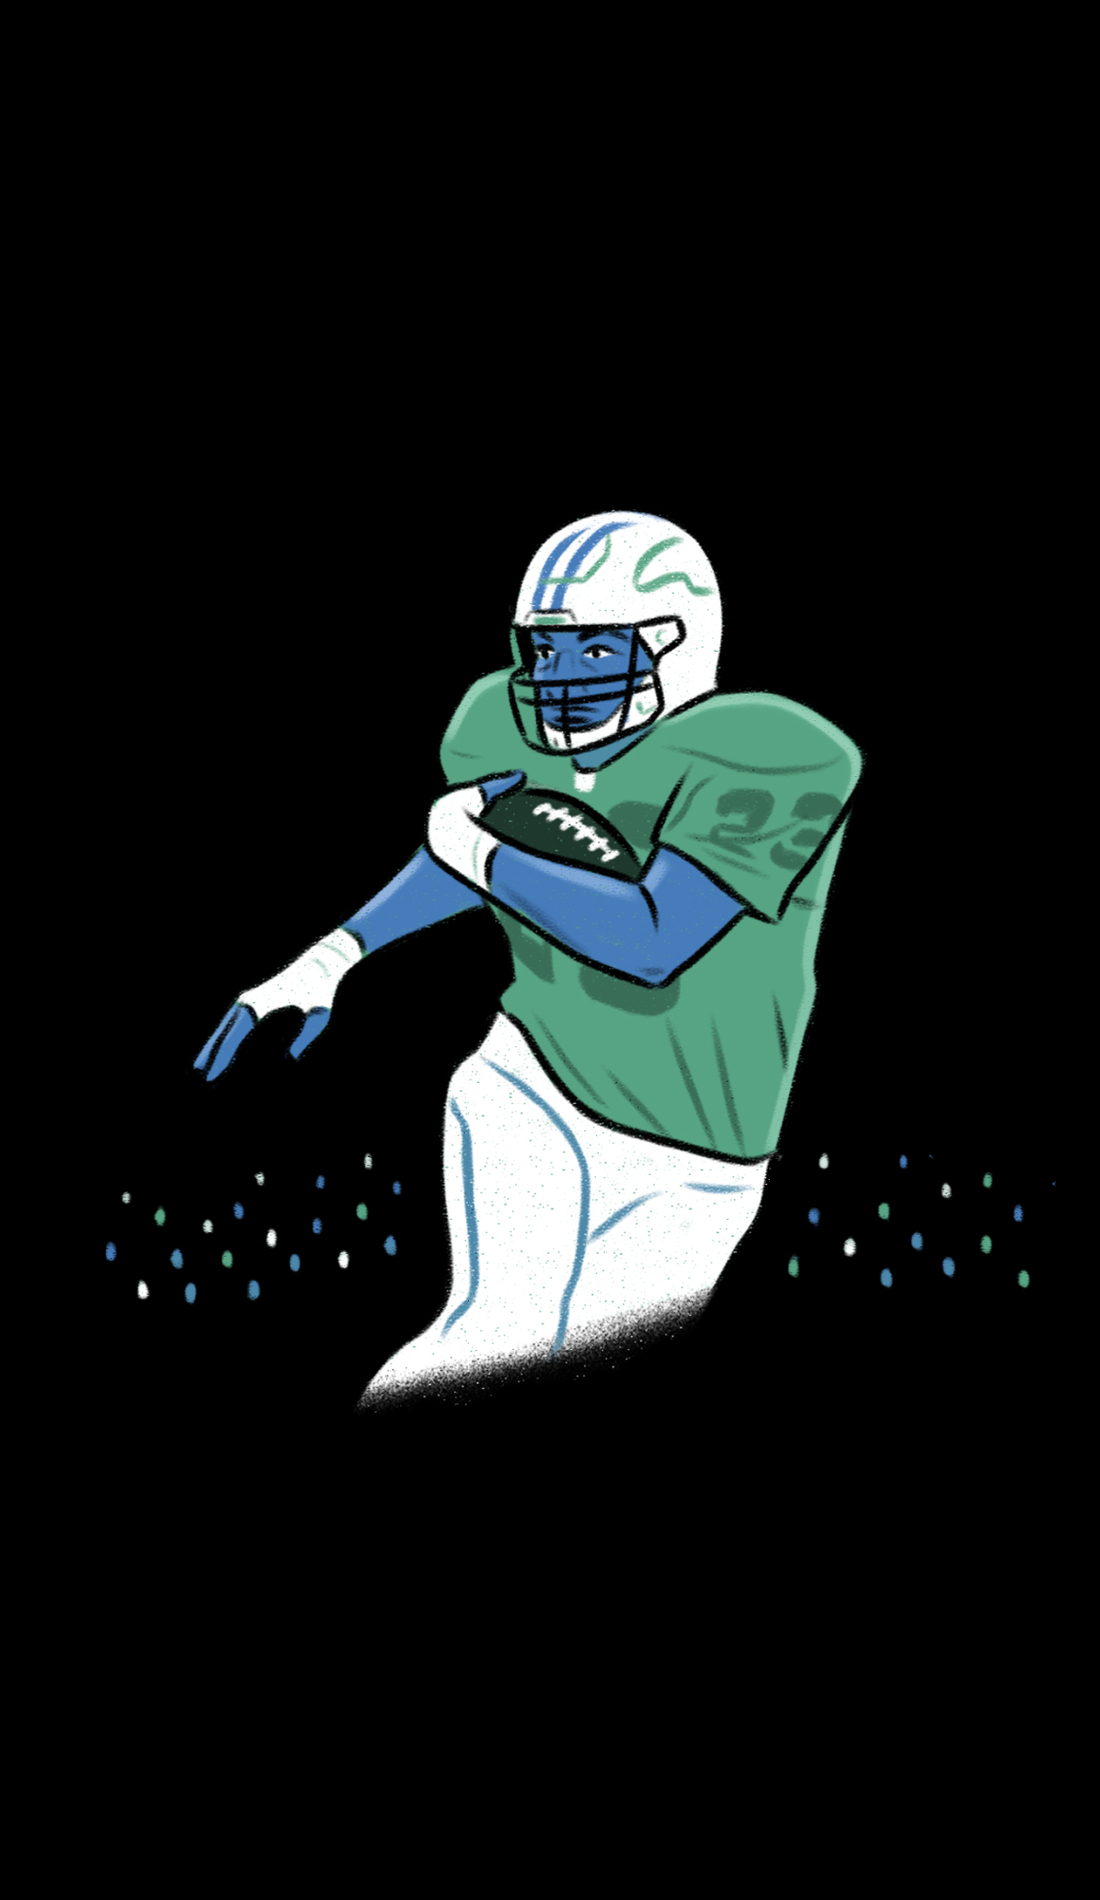 A Boise State Broncos Football live event